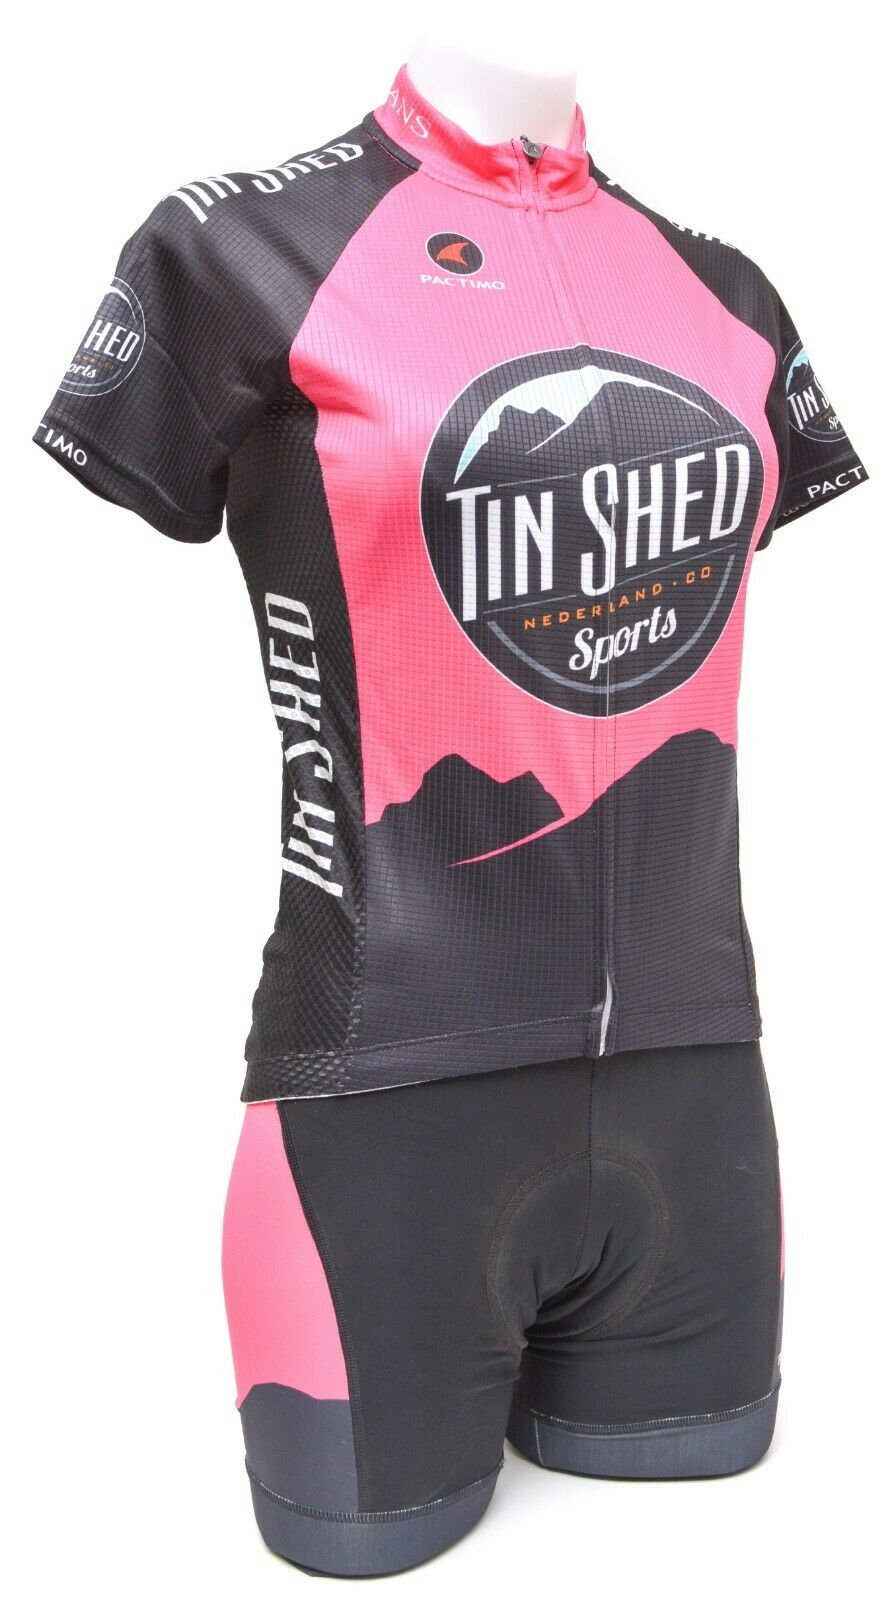 Pactimo Women's Tin Shed Ascent SS Jersey w  Ascent Pro Bib Shorts Pink Bike